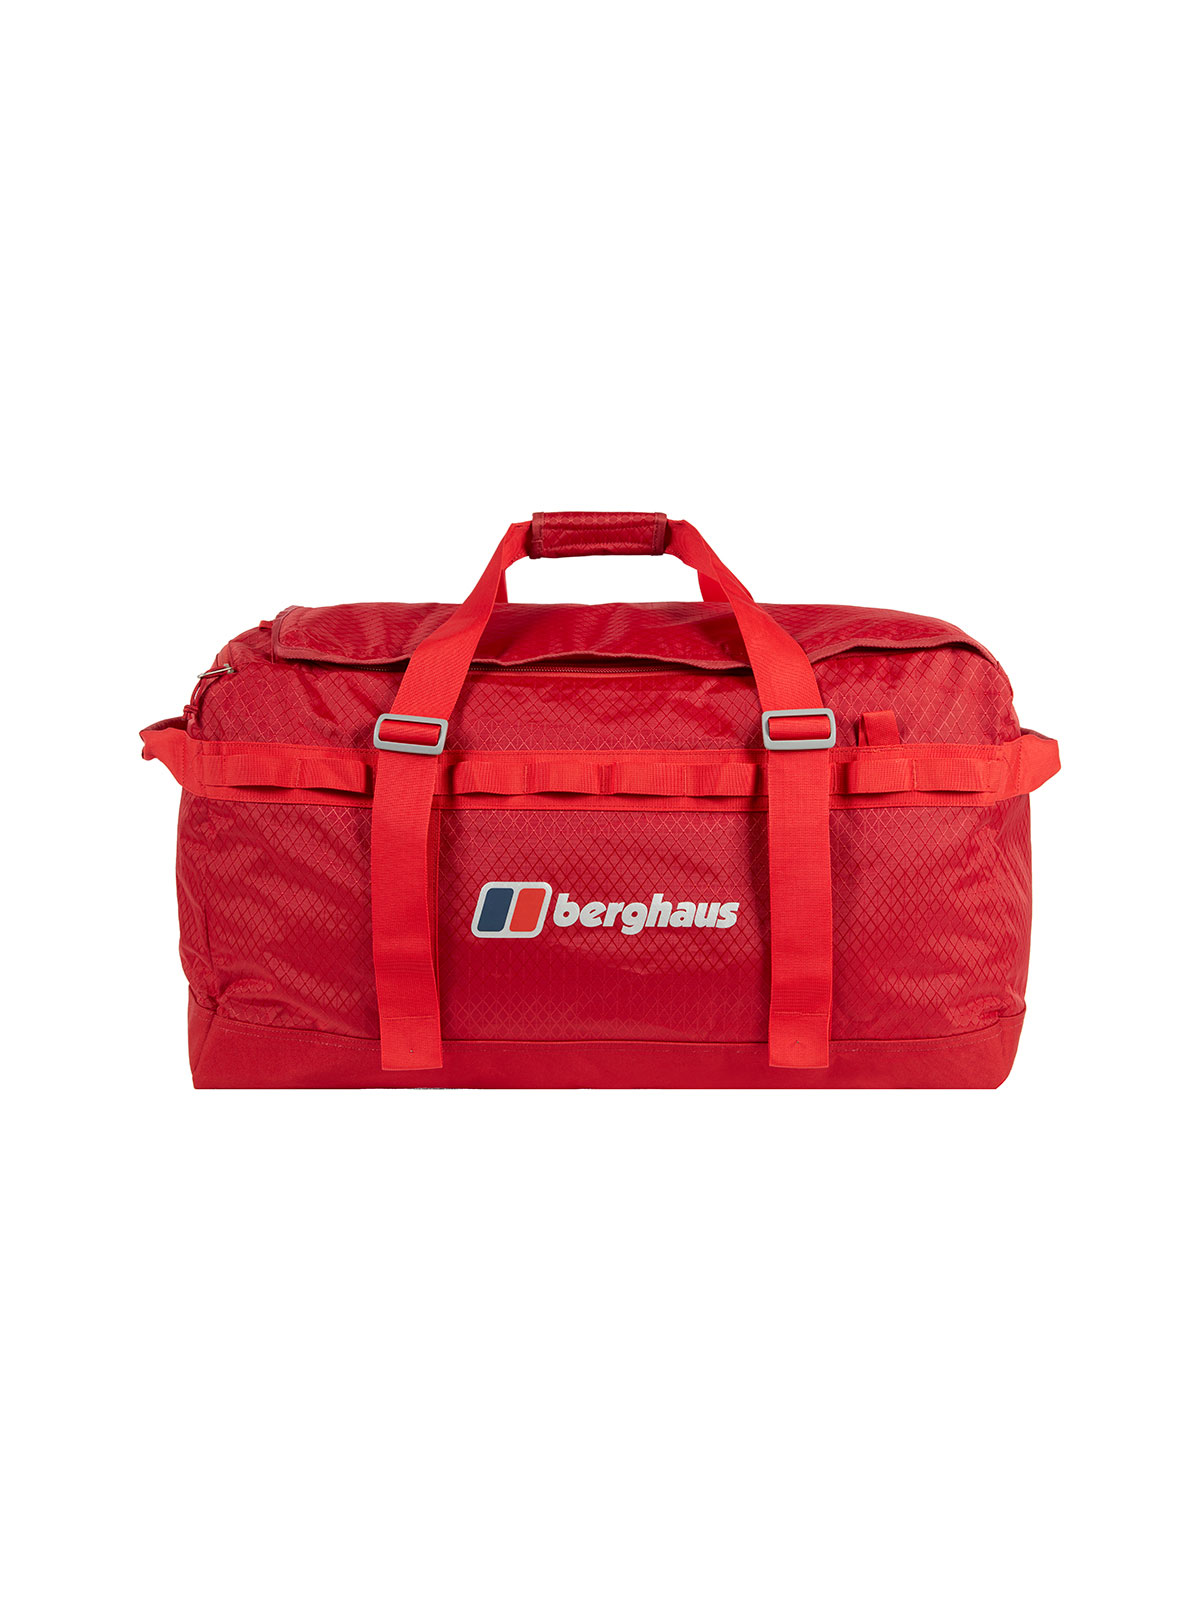 Berghaus Red/Red Expedition Mule 100 Holdall